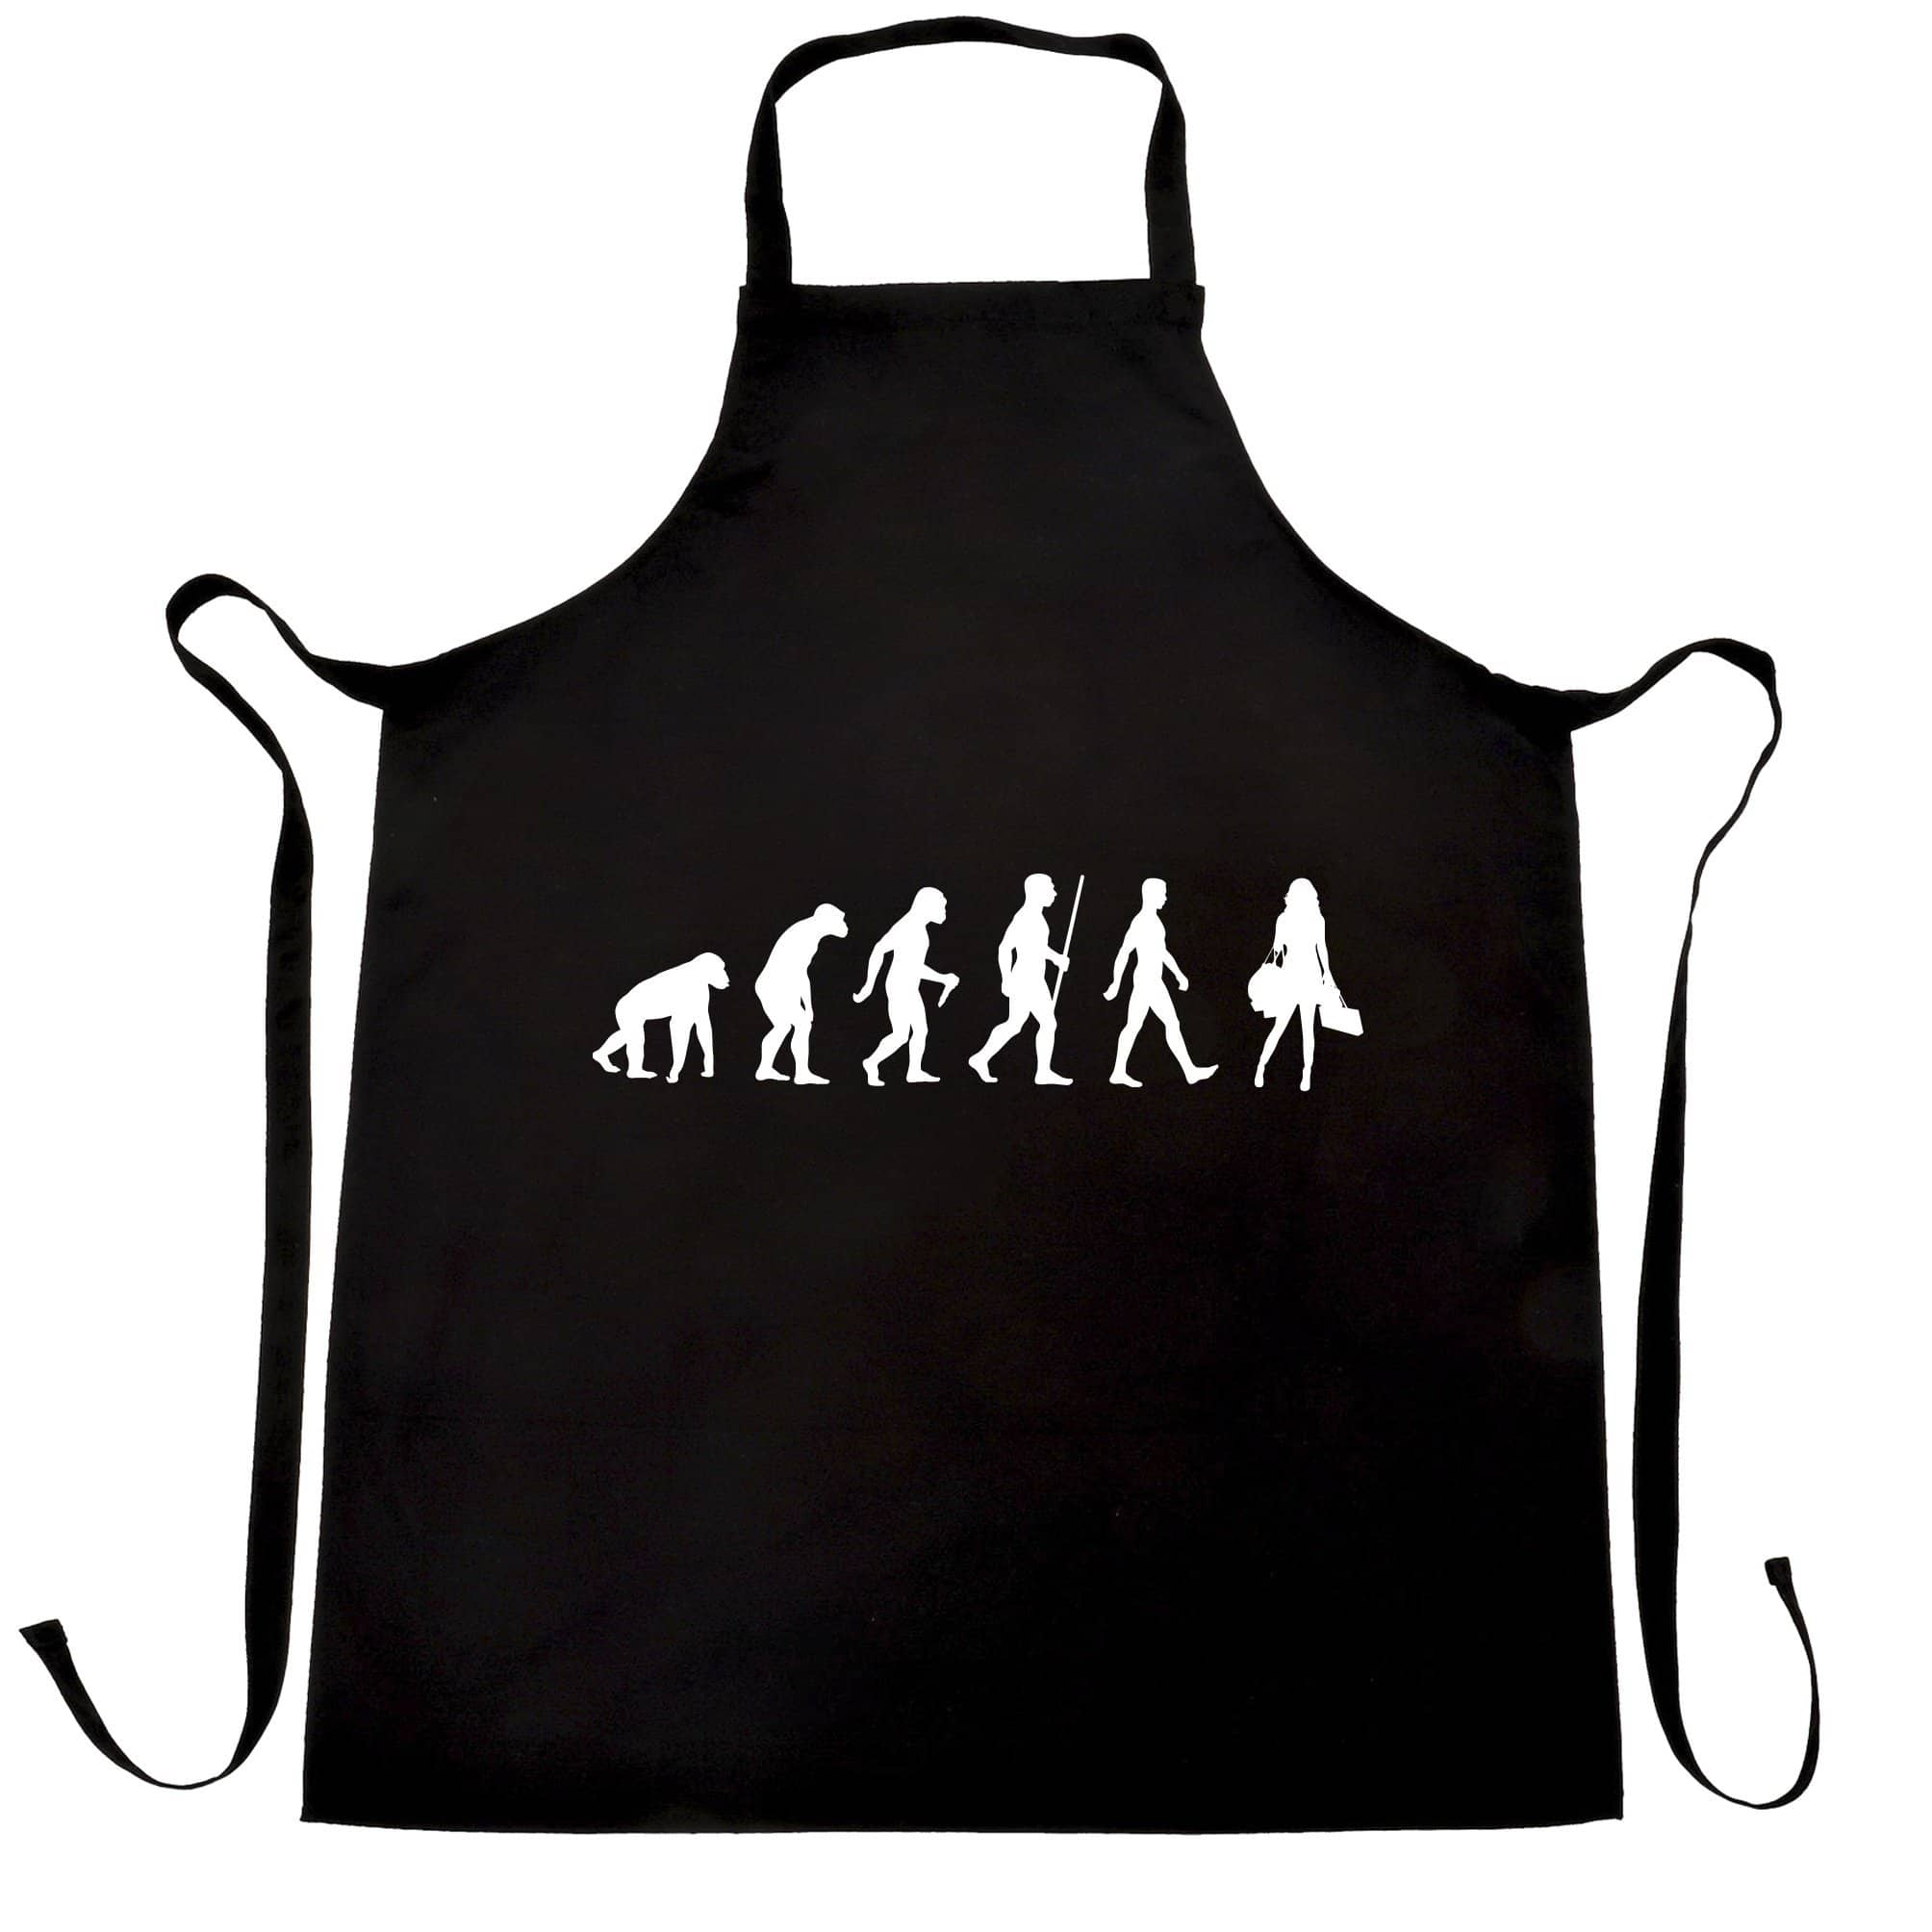 Joke Chef's Apron The Evolution of Shopping